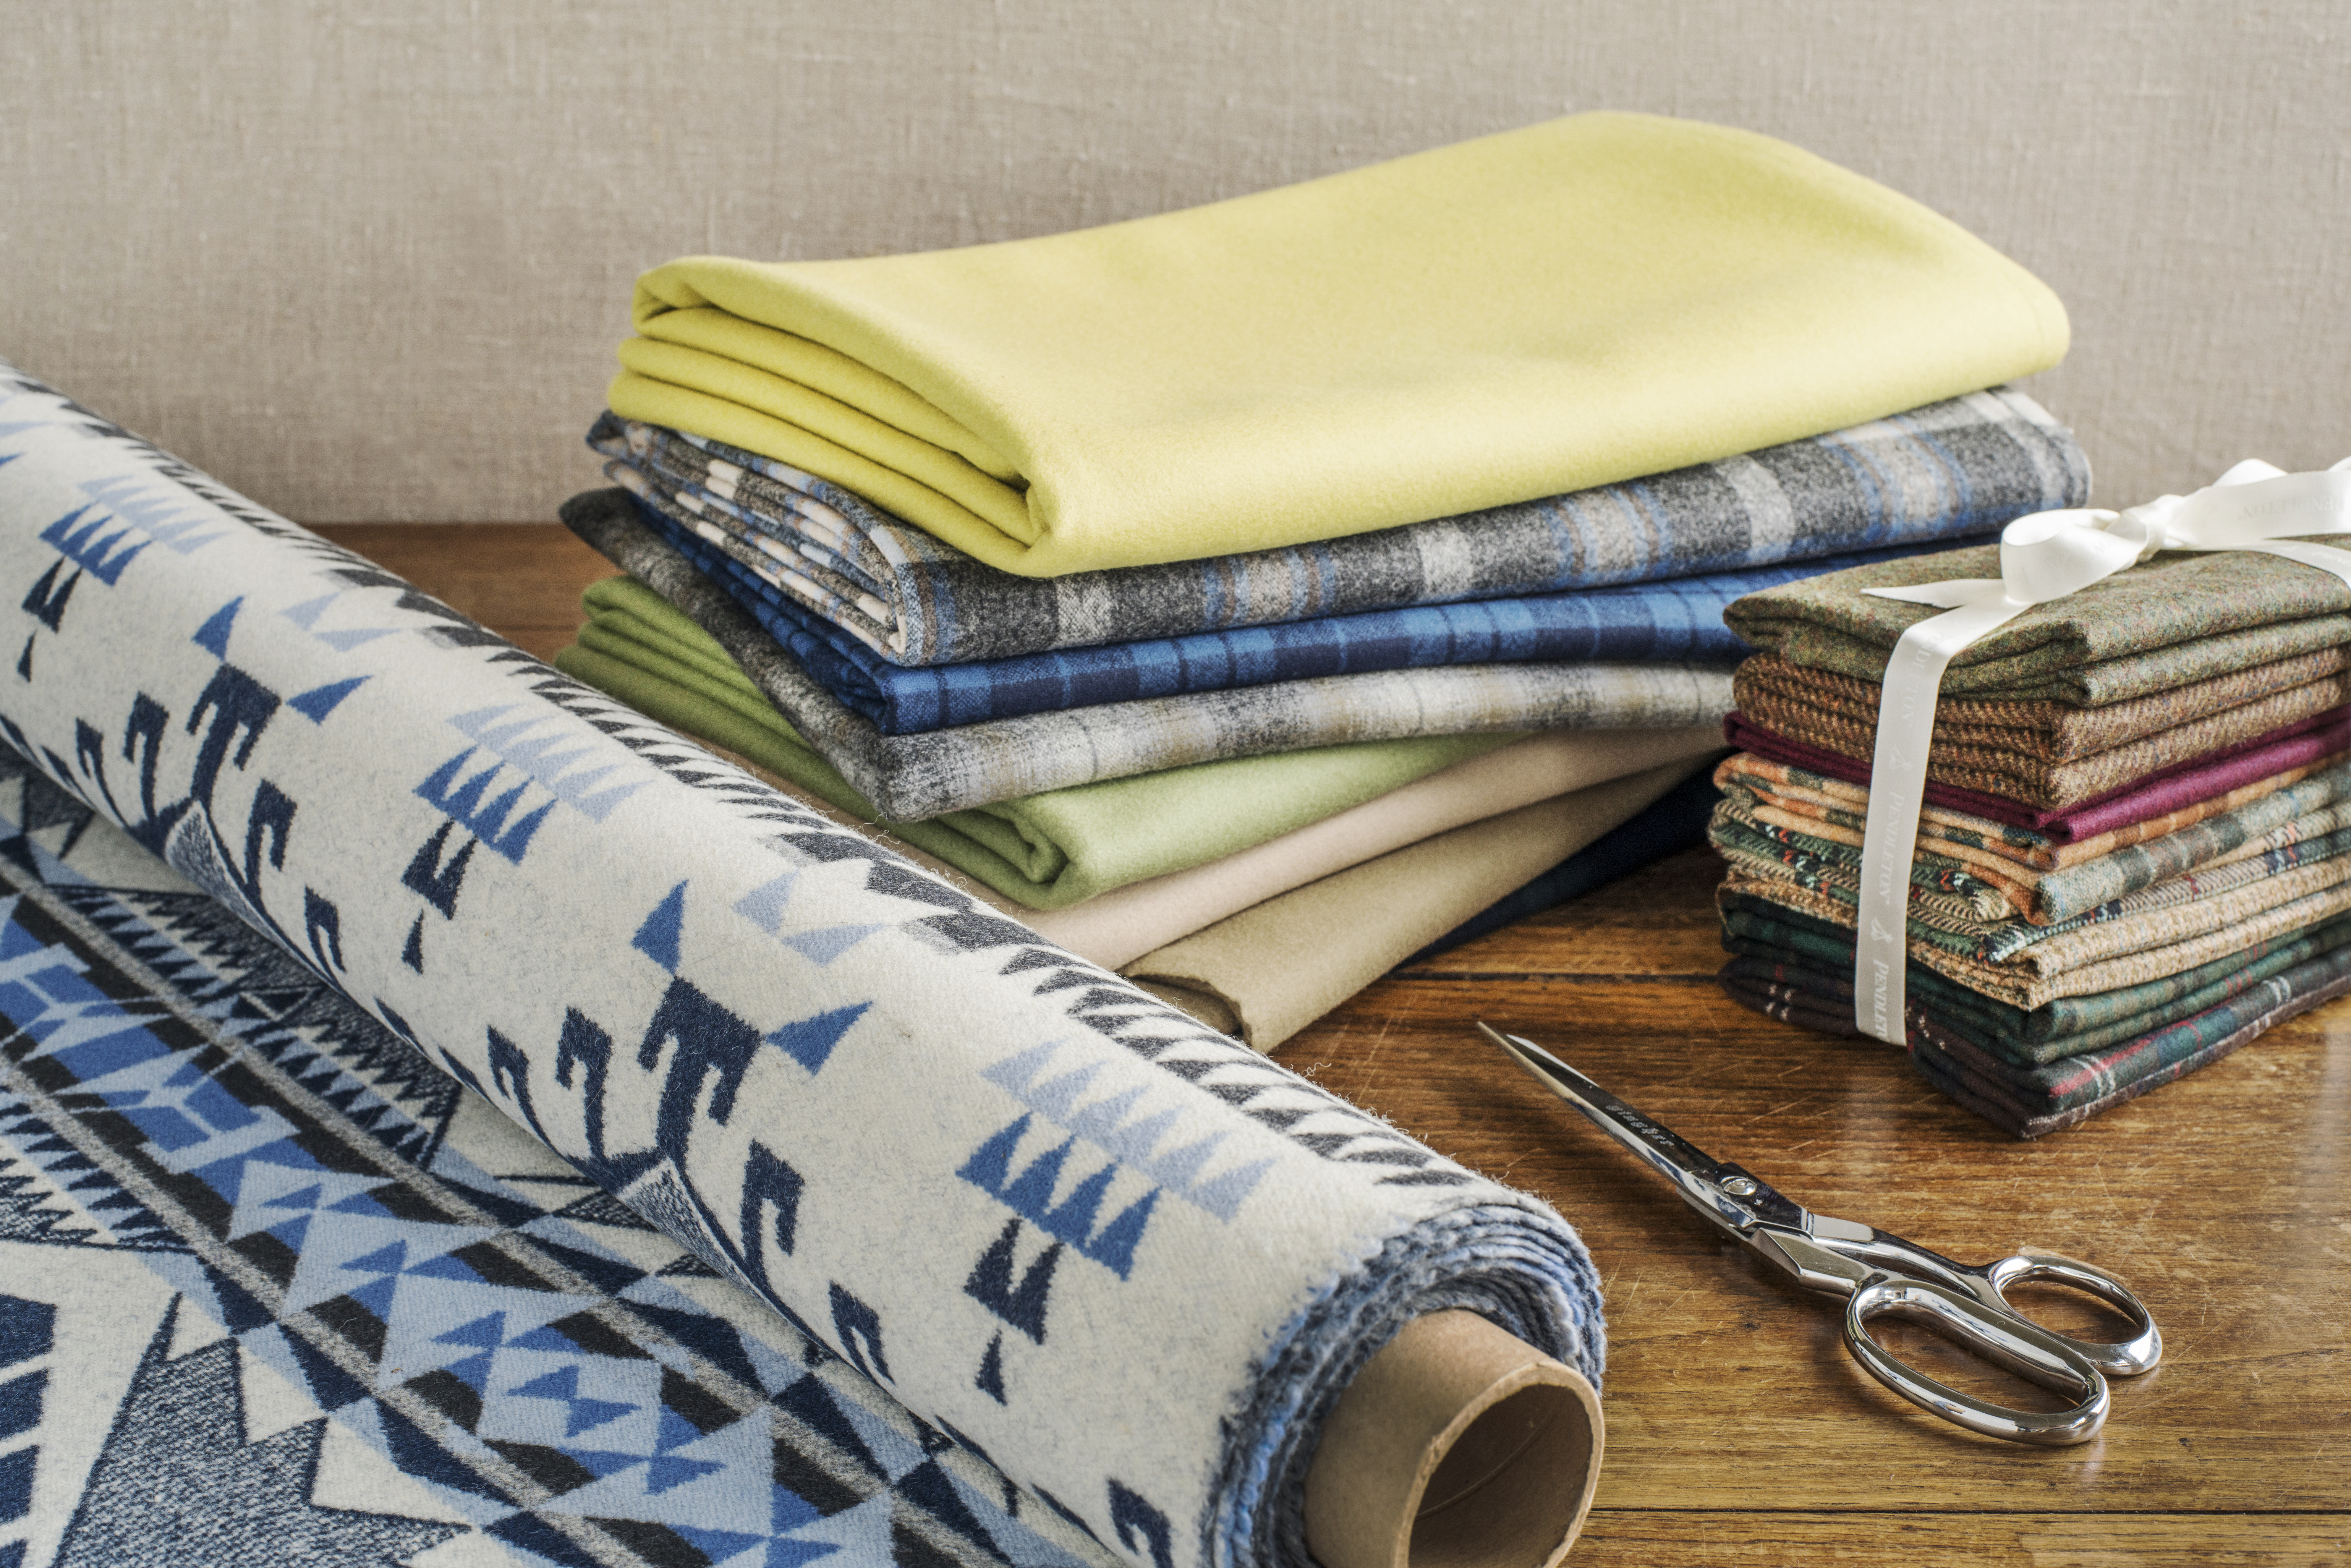 Roll of Pendleton fabric in blue and white, next to two stacks of folded Pendleton wool fabrics, scissors.